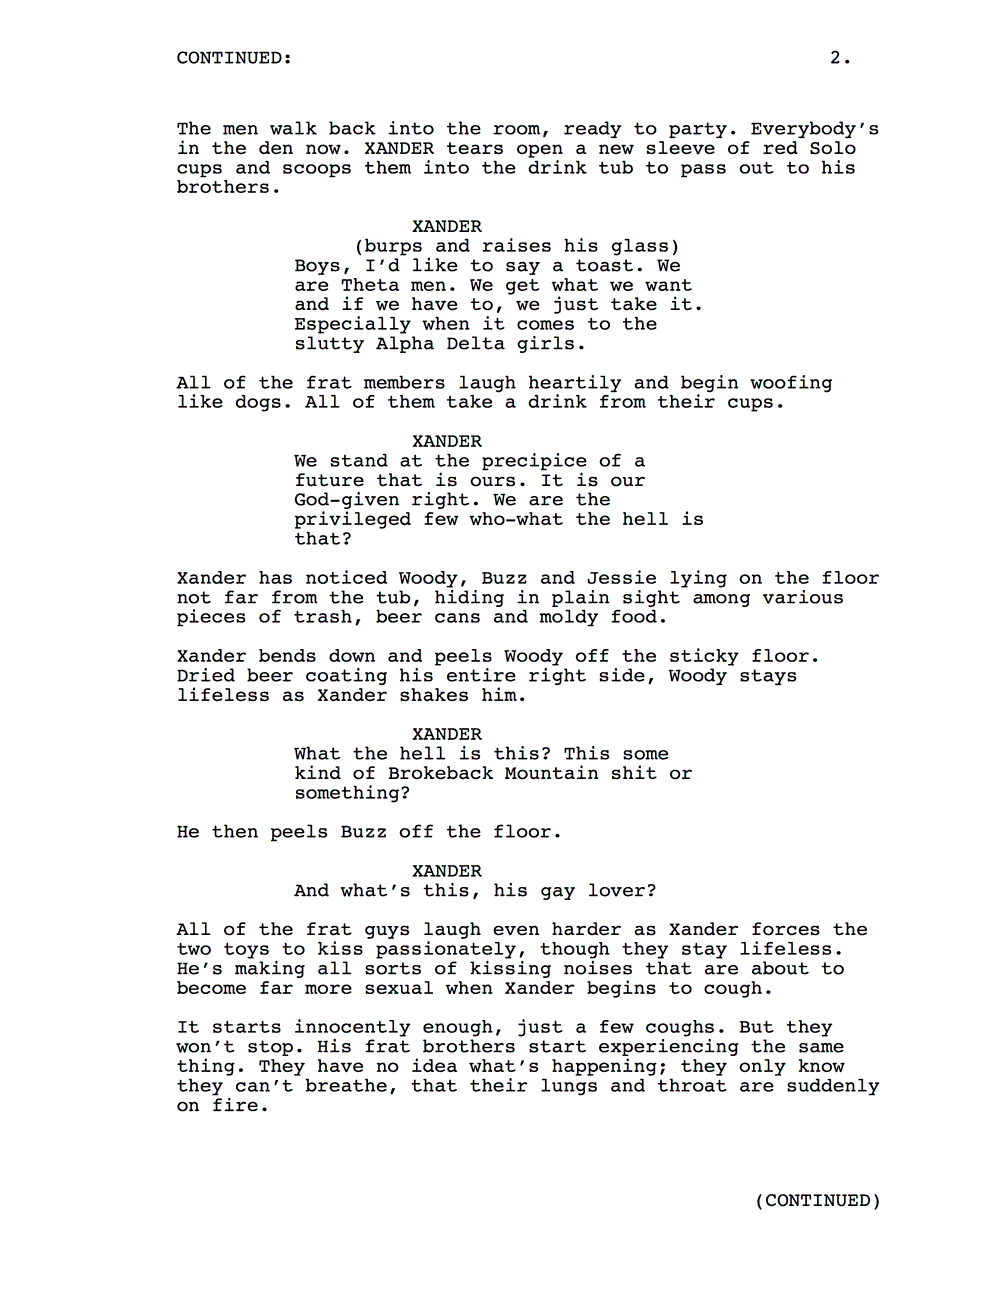 Toy Story 5 Leaked Script